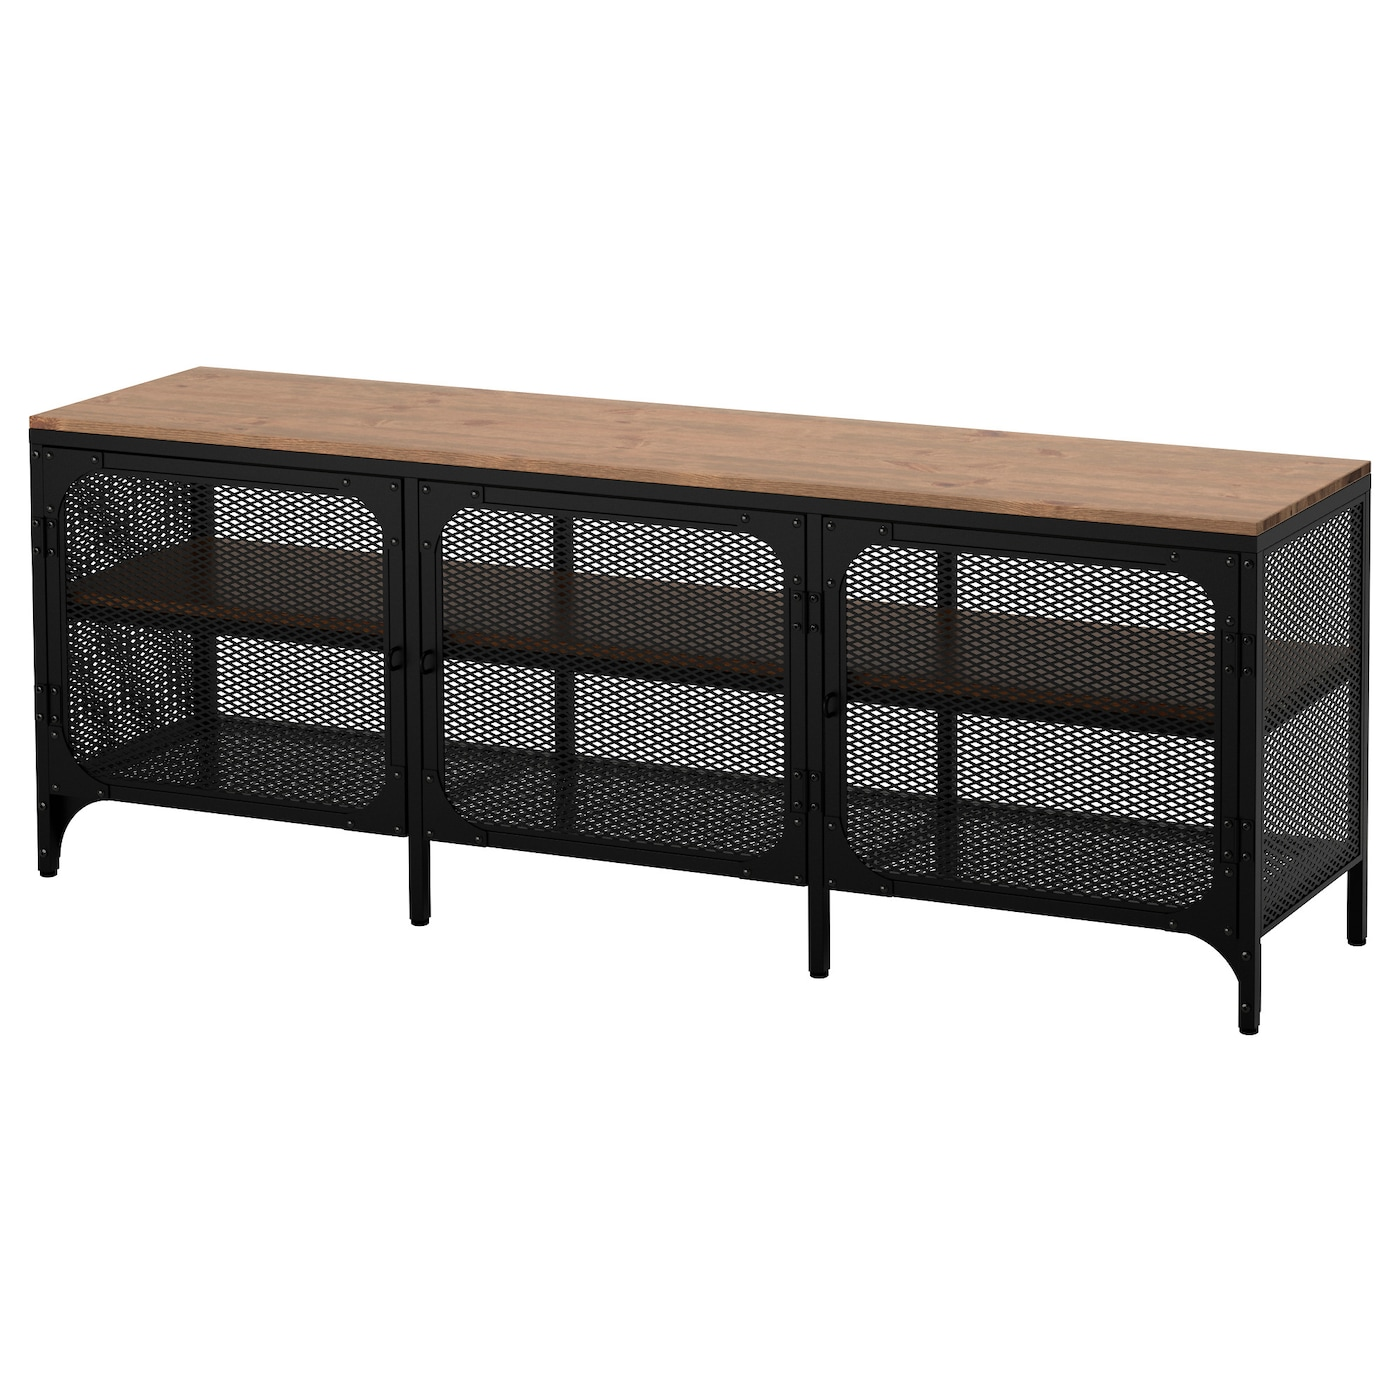 tv stands media units ikea ireland dublin. Black Bedroom Furniture Sets. Home Design Ideas